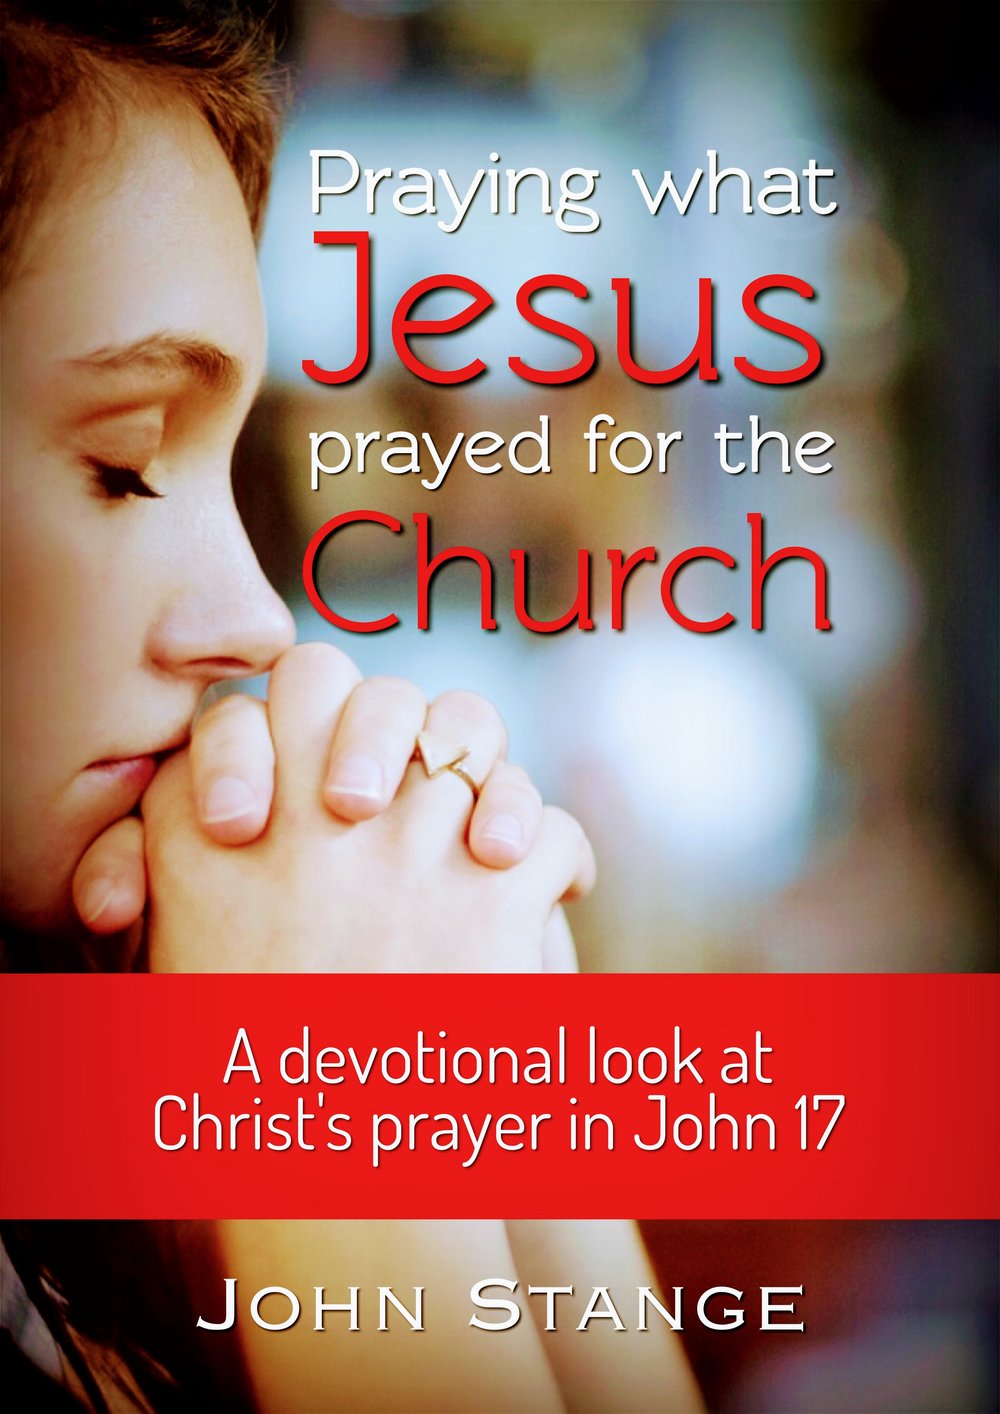 Praying what Jesus Prayed for the Church.JPG